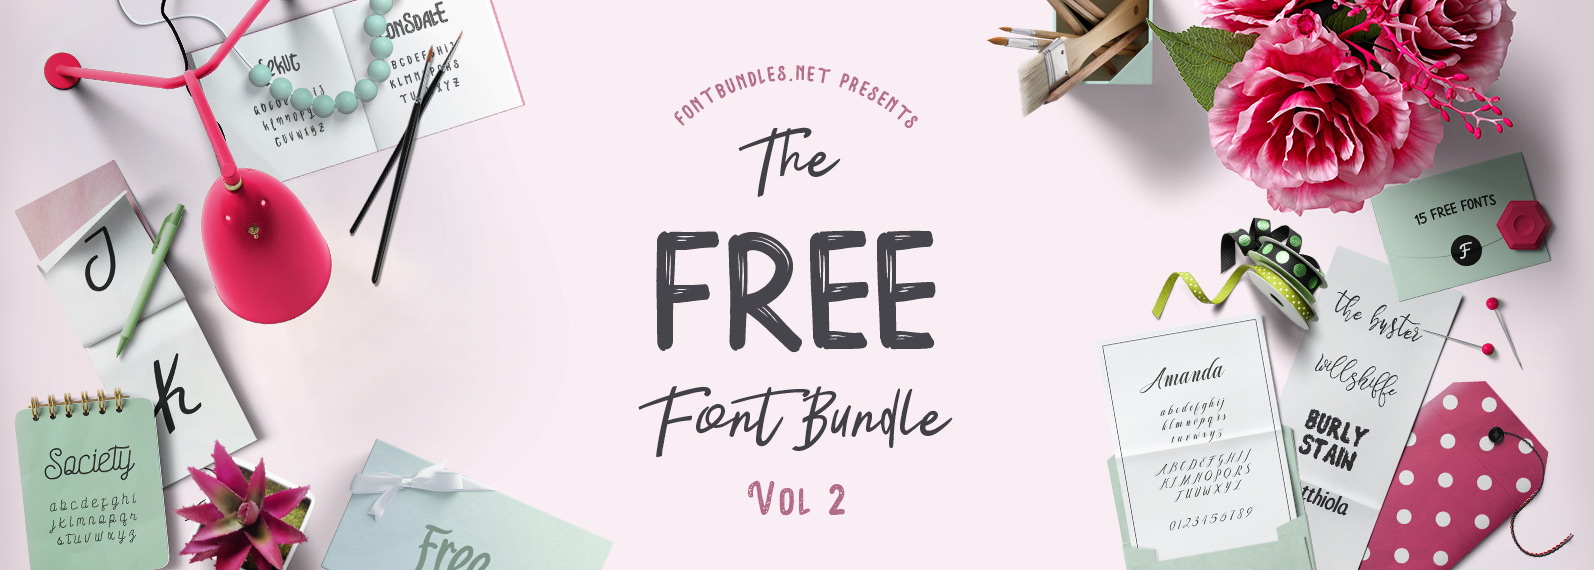 Download The Free Font Bundle Vol II | Font Bundles